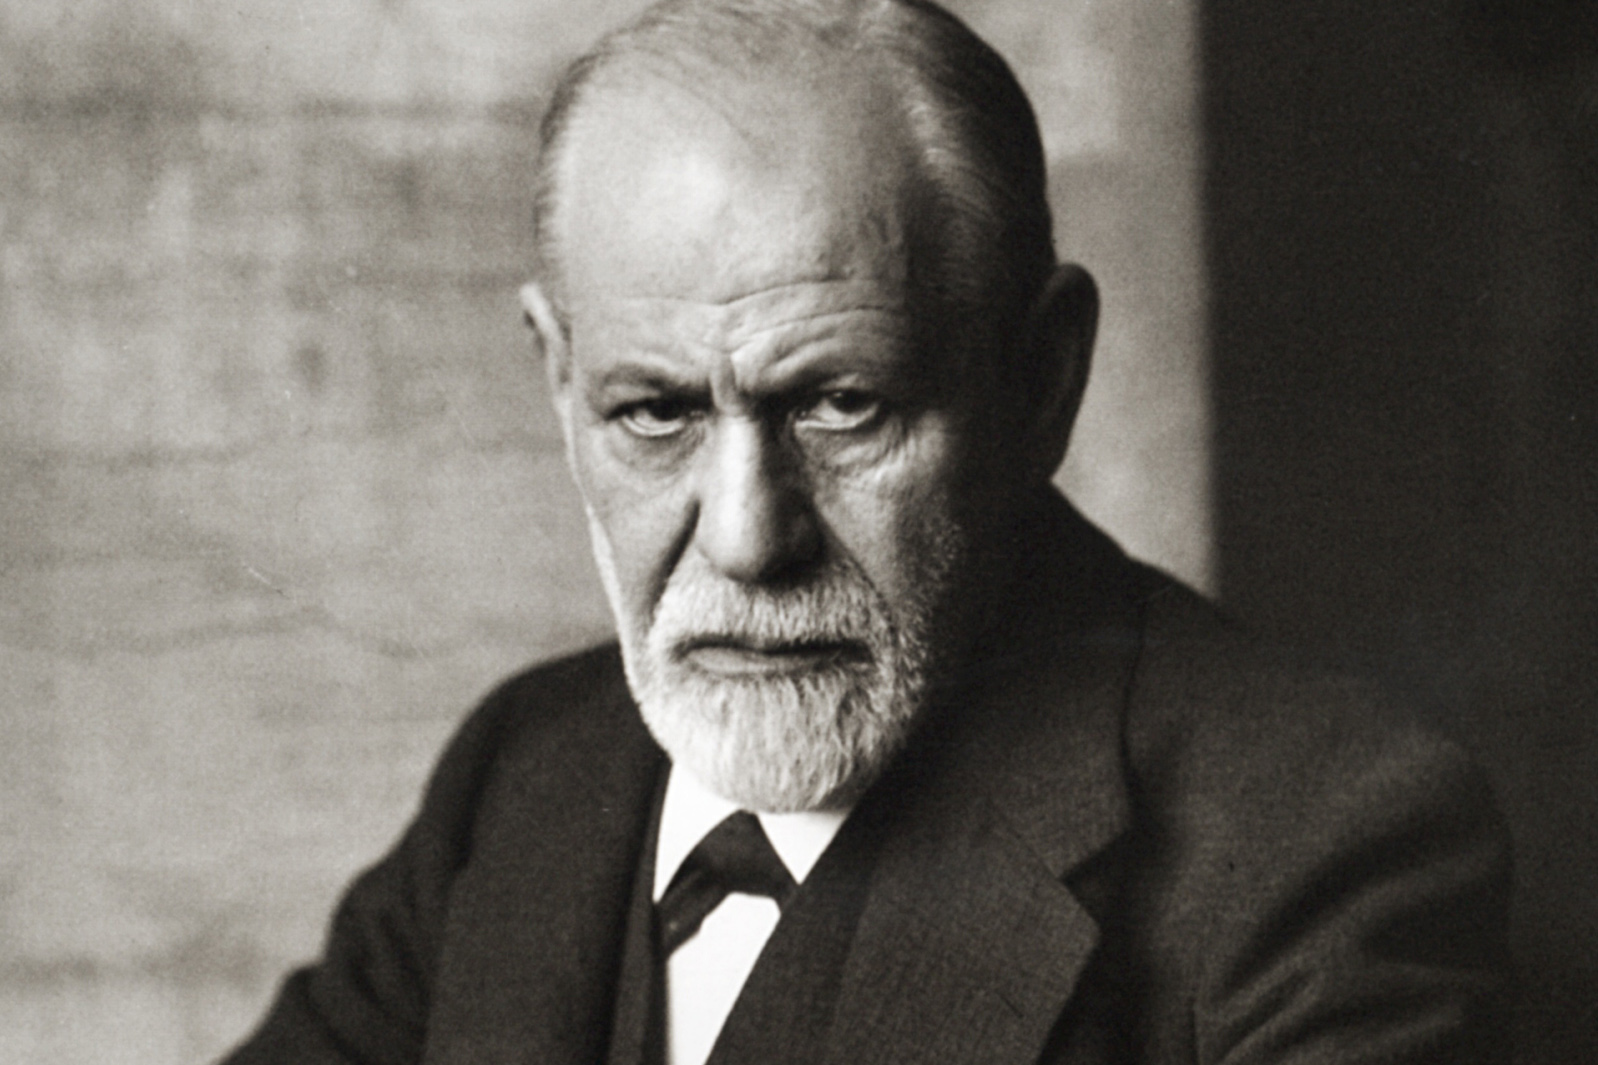 sigmund freud sick jewish liar national vanguard sigmund freud 1926